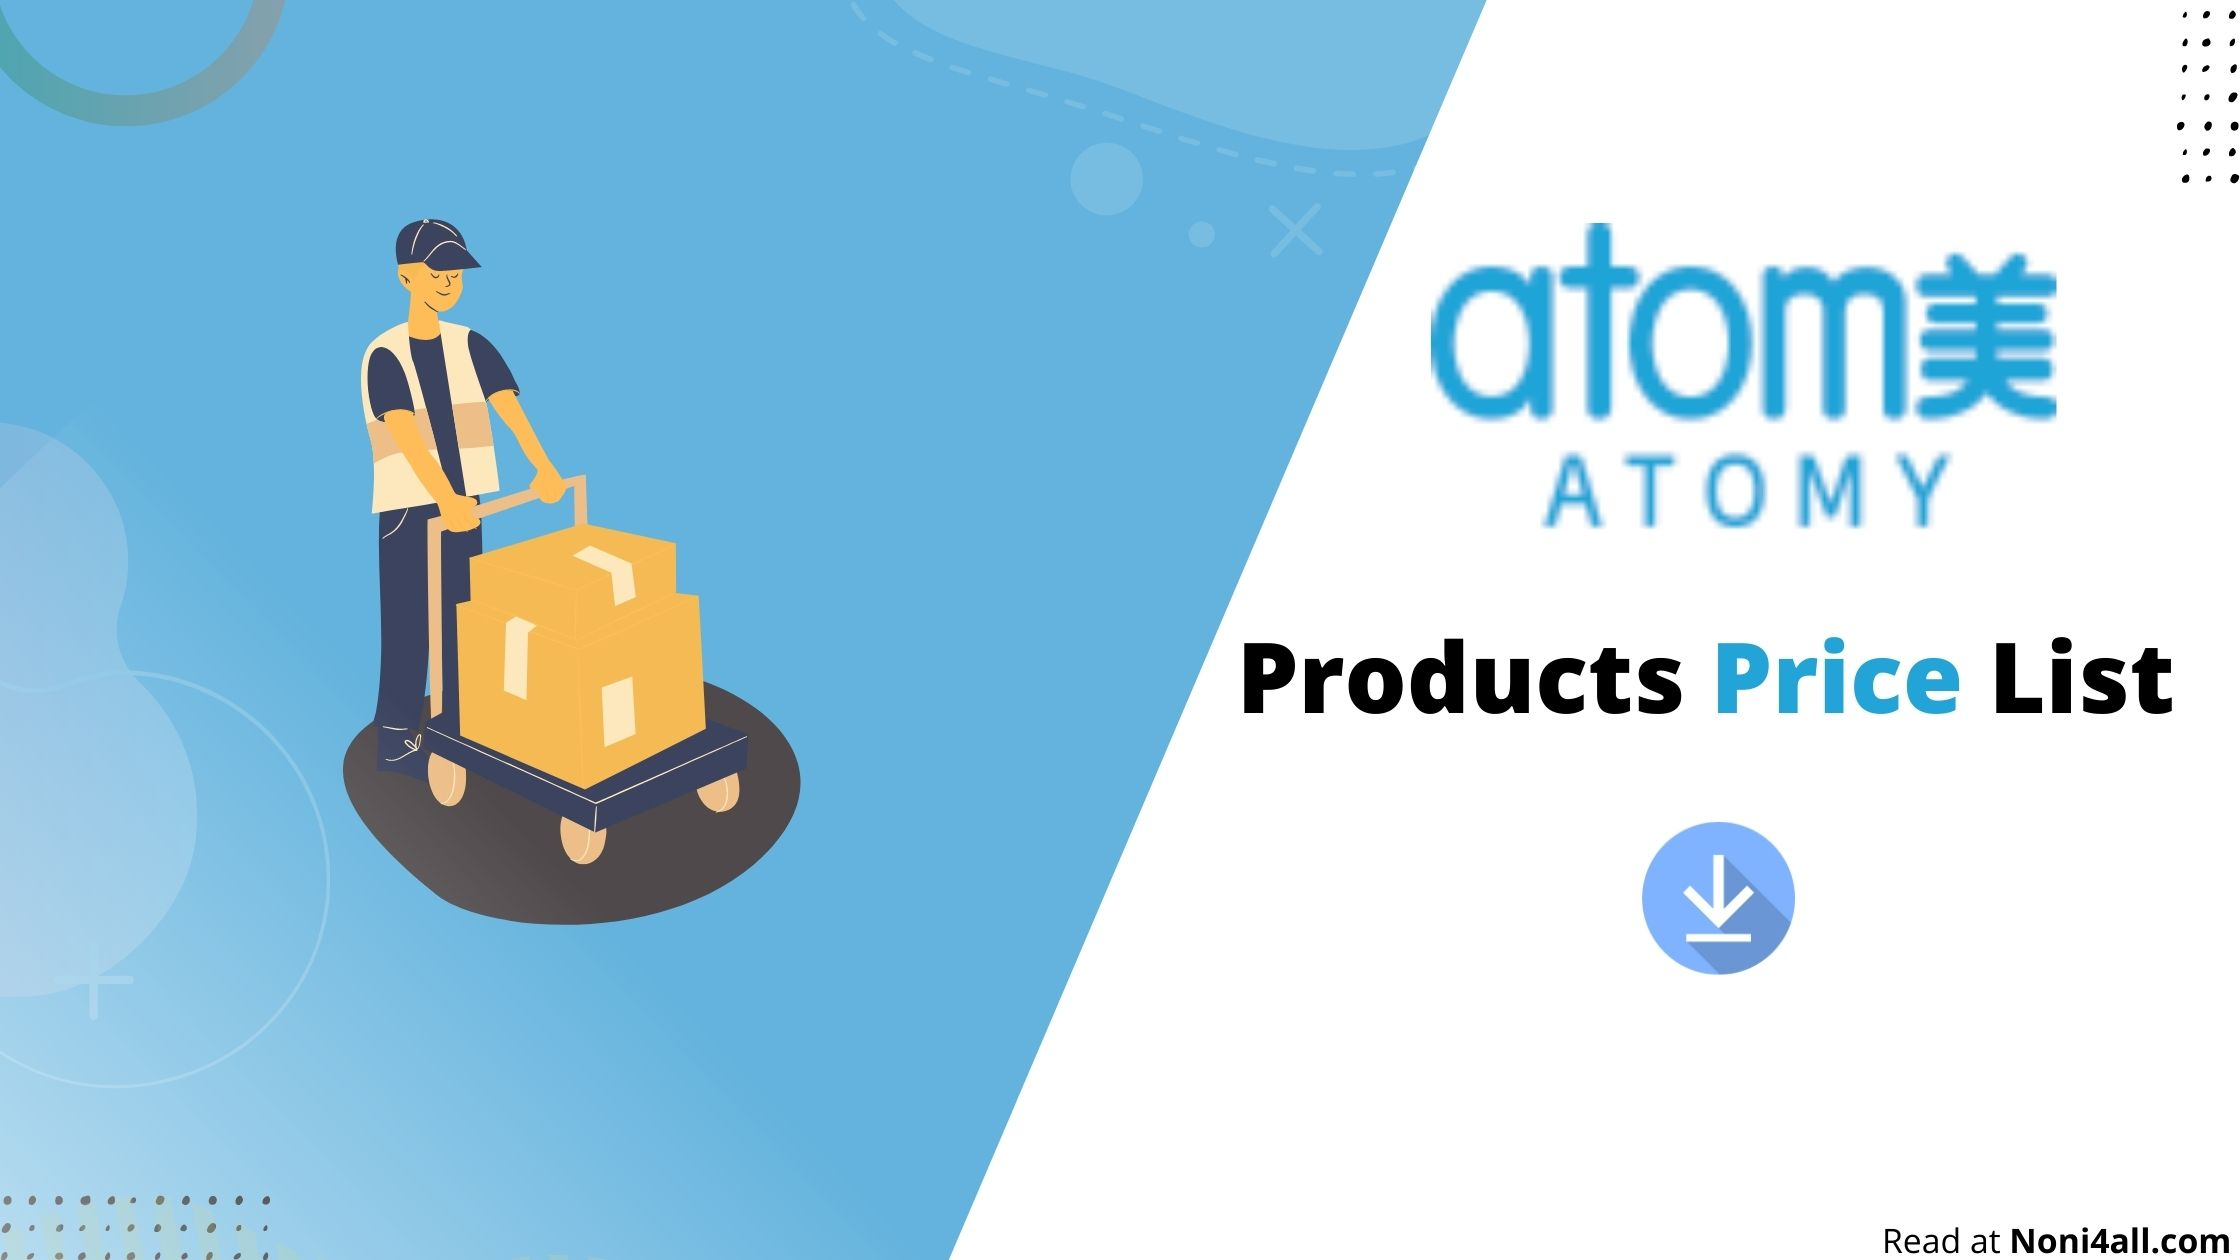 Atomy Products Price List